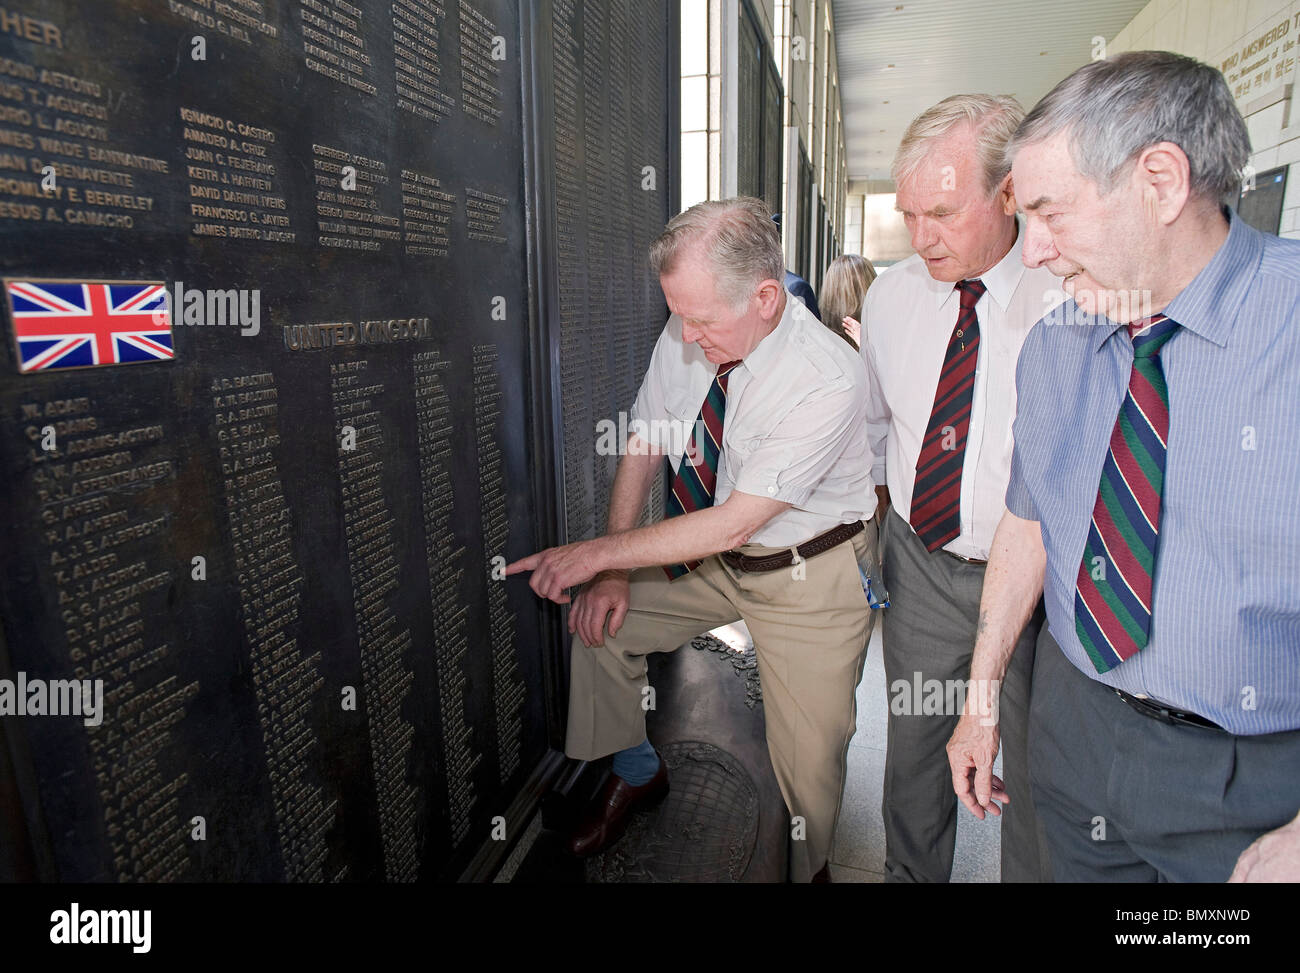 British Korean War veterans look at the names of fellow British